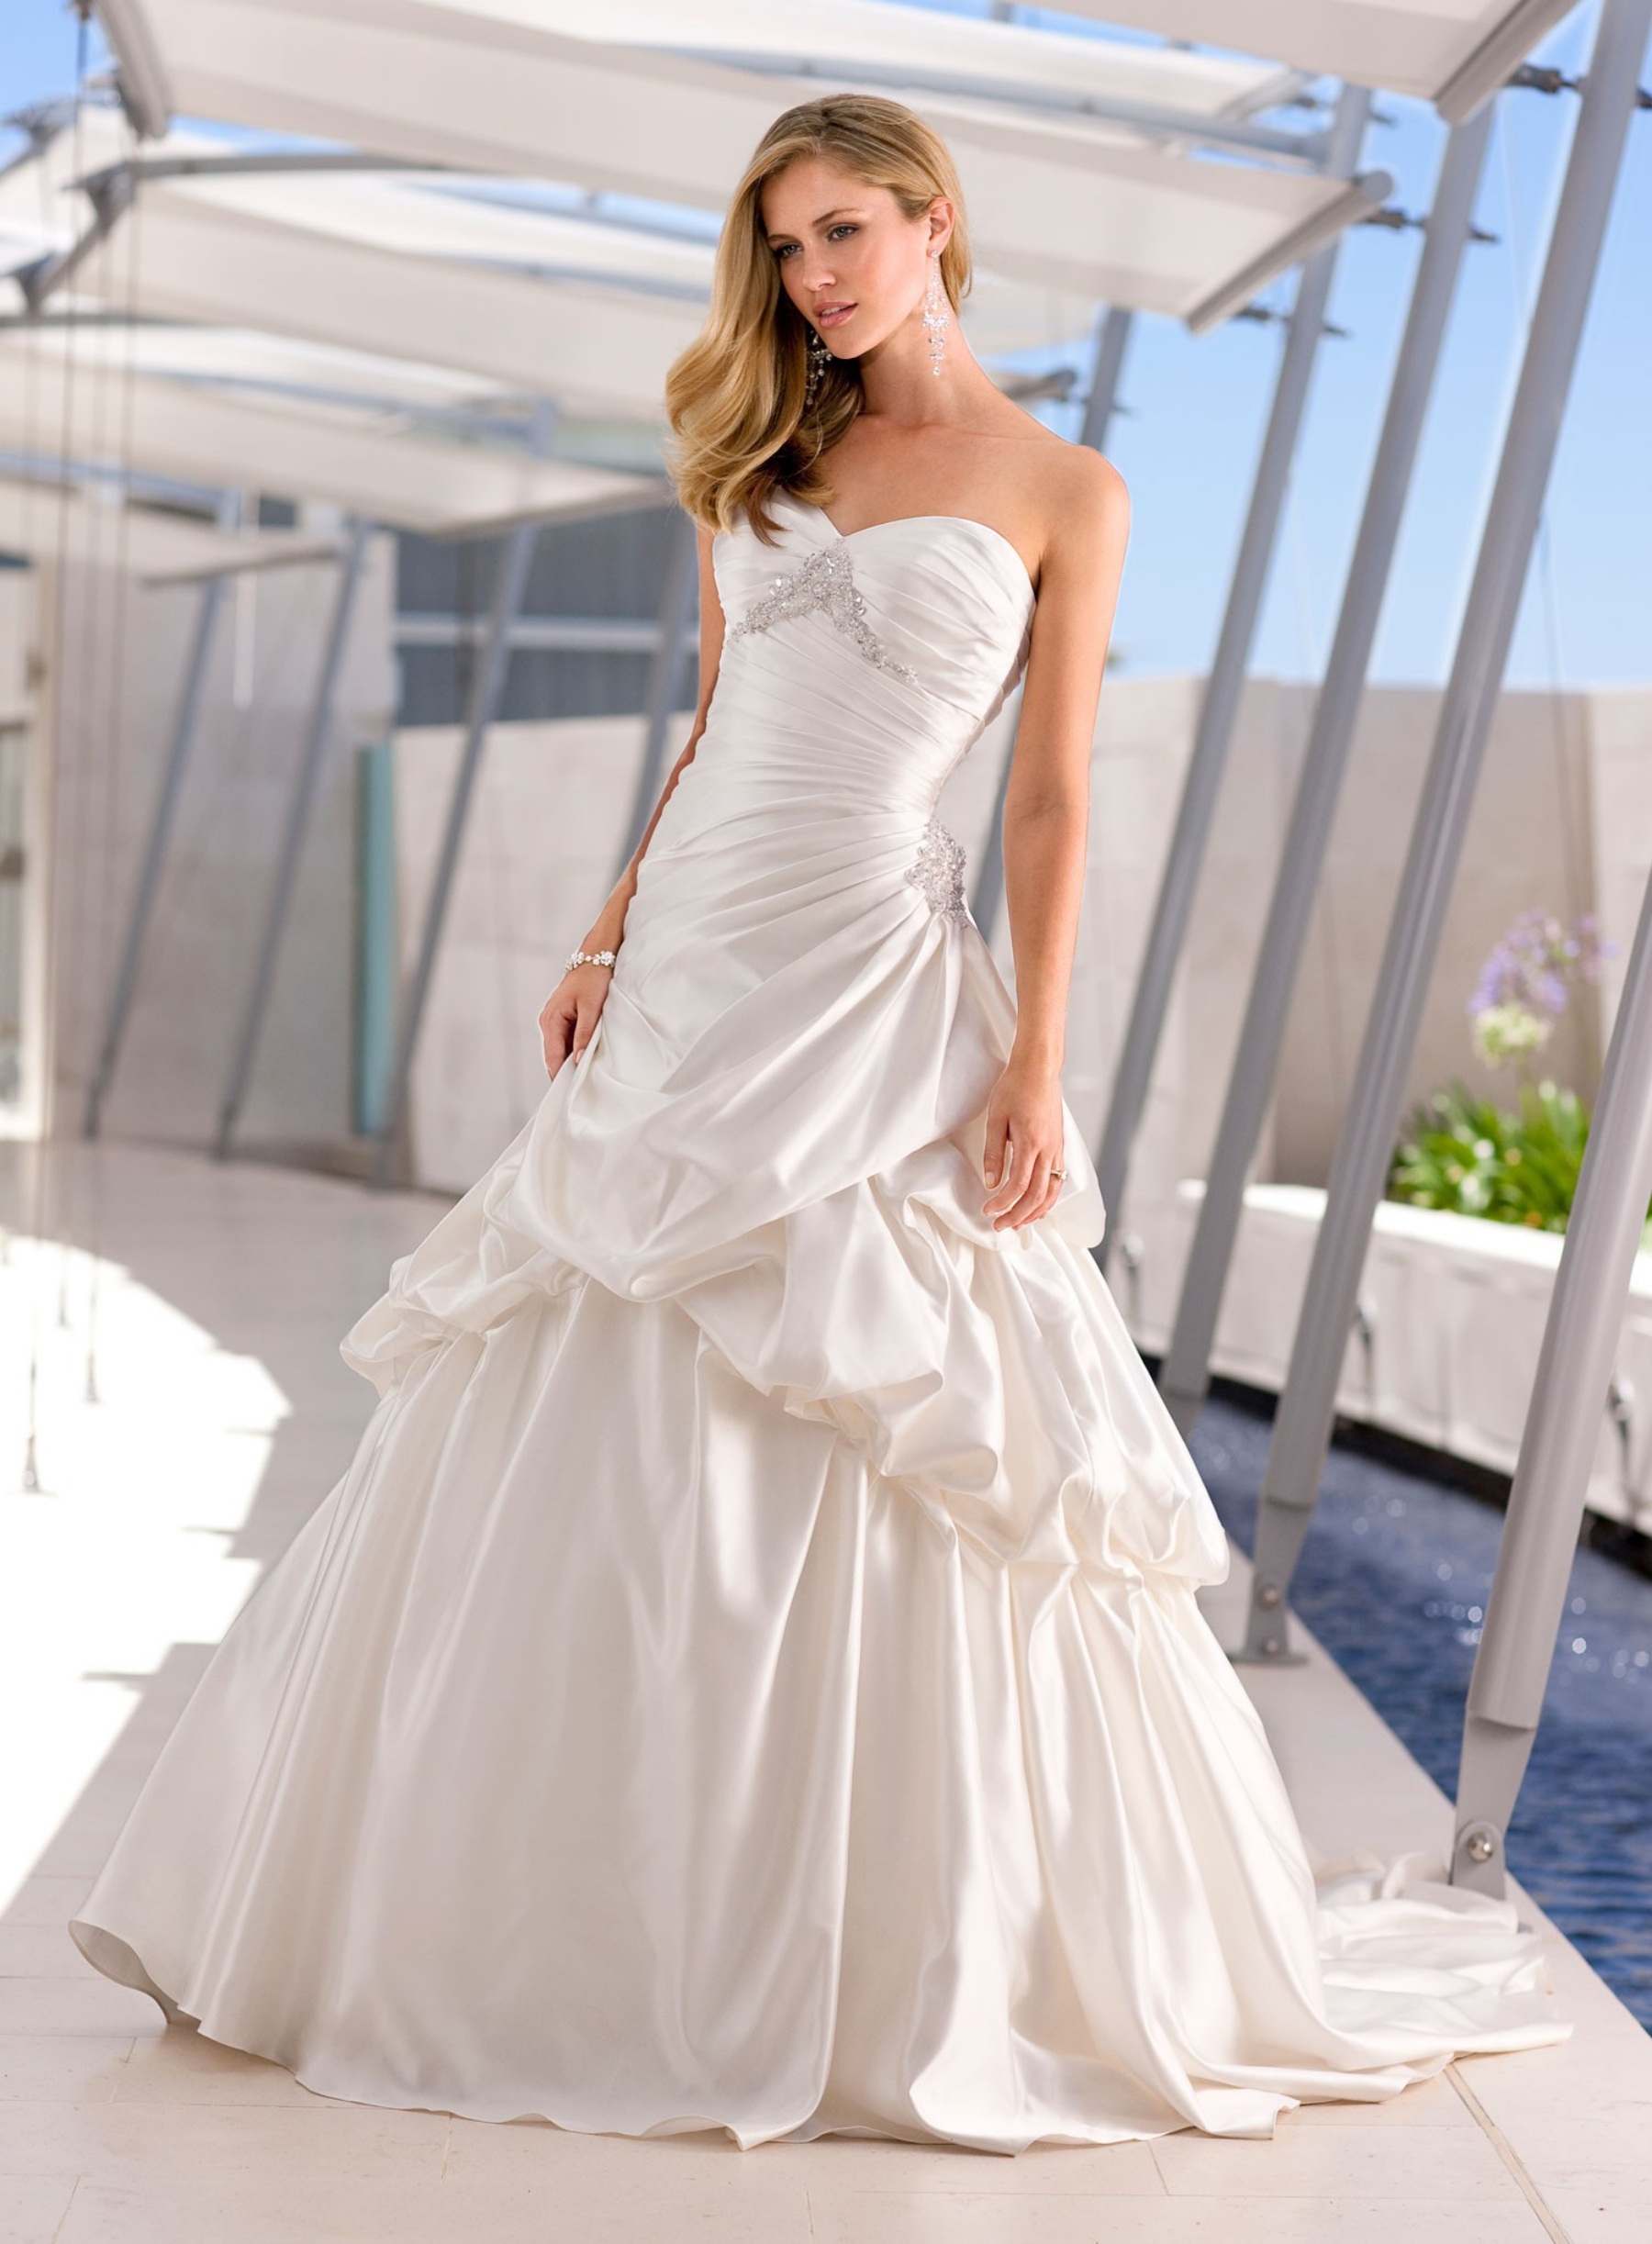 14 Cheap Wedding Dresses Under 100  Getfashionideasm. Most Beautiful Wedding Gowns Ever Made. Pictures Of Sheath Wedding Dresses. Light Gold Wedding Dress Bridesmaids. Long Sleeve Wedding Dresses Etsy. Wedding Dresses Georgian Style. Designer Wedding Dresses Philippines. Tea Length Wedding Guest Dresses Uk. Wedding Dresses Allure Mermaid